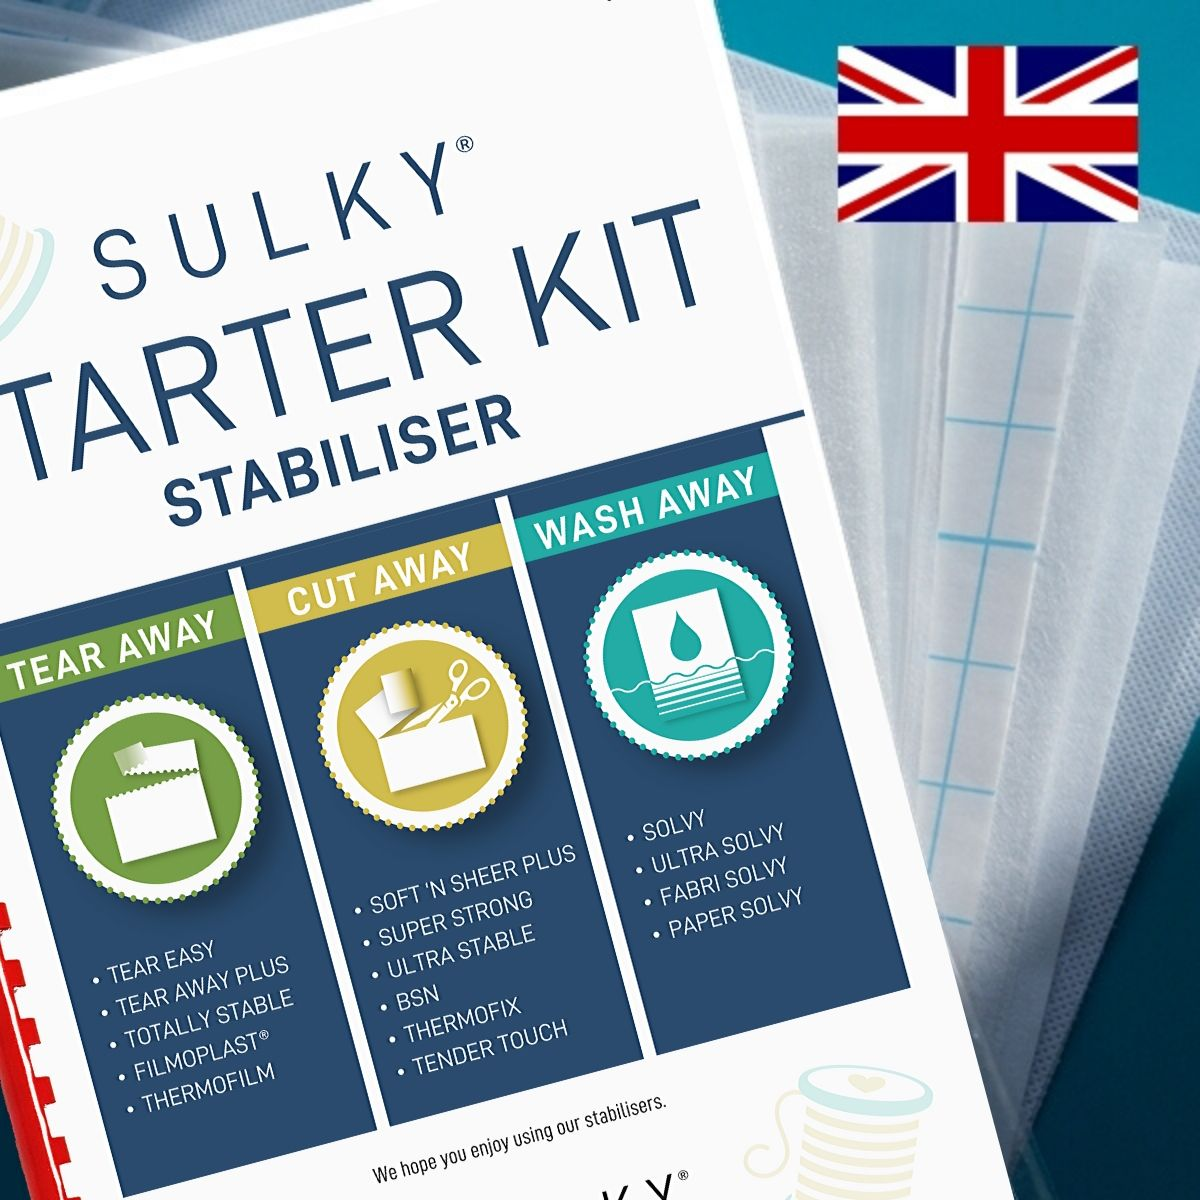 SULKY STARTER KIT - Stabilisers (in Englisch) - Package contains 15 Sampler